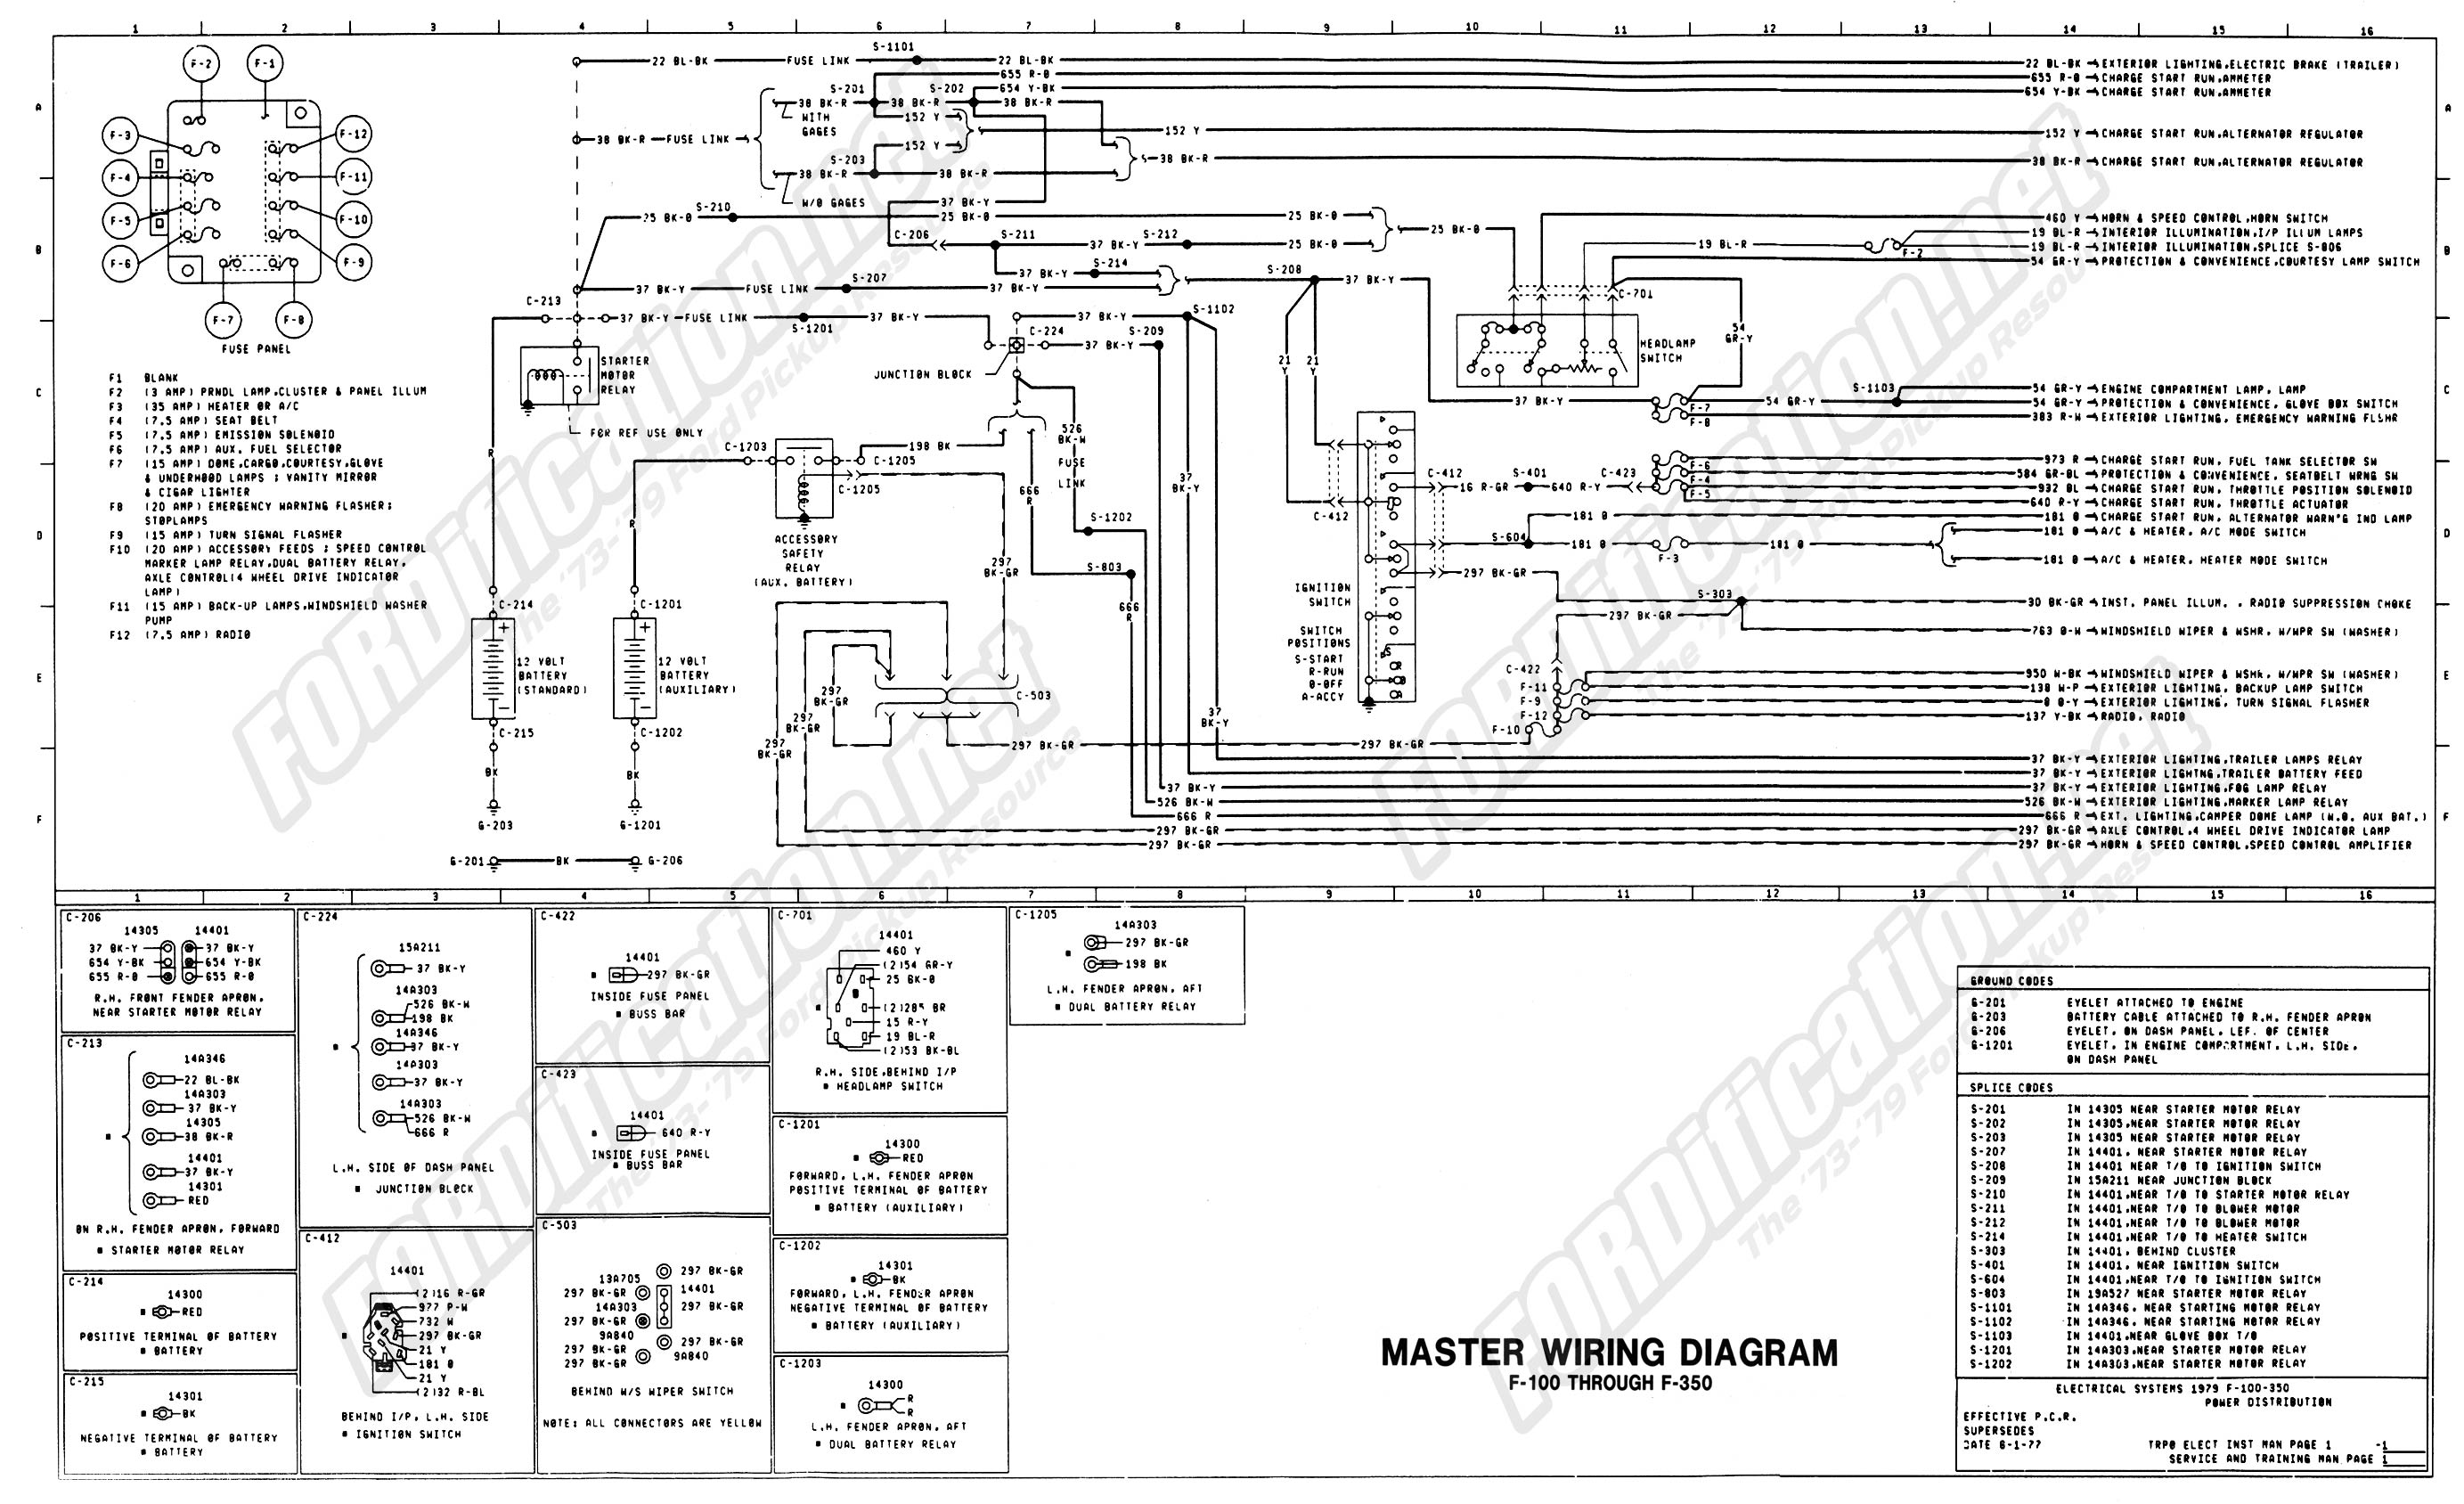 wiring_79master_1of9 1977 ford f100 alternator wiring diagram wiring diagram and 1973 ford f100 wiring diagram at bayanpartner.co